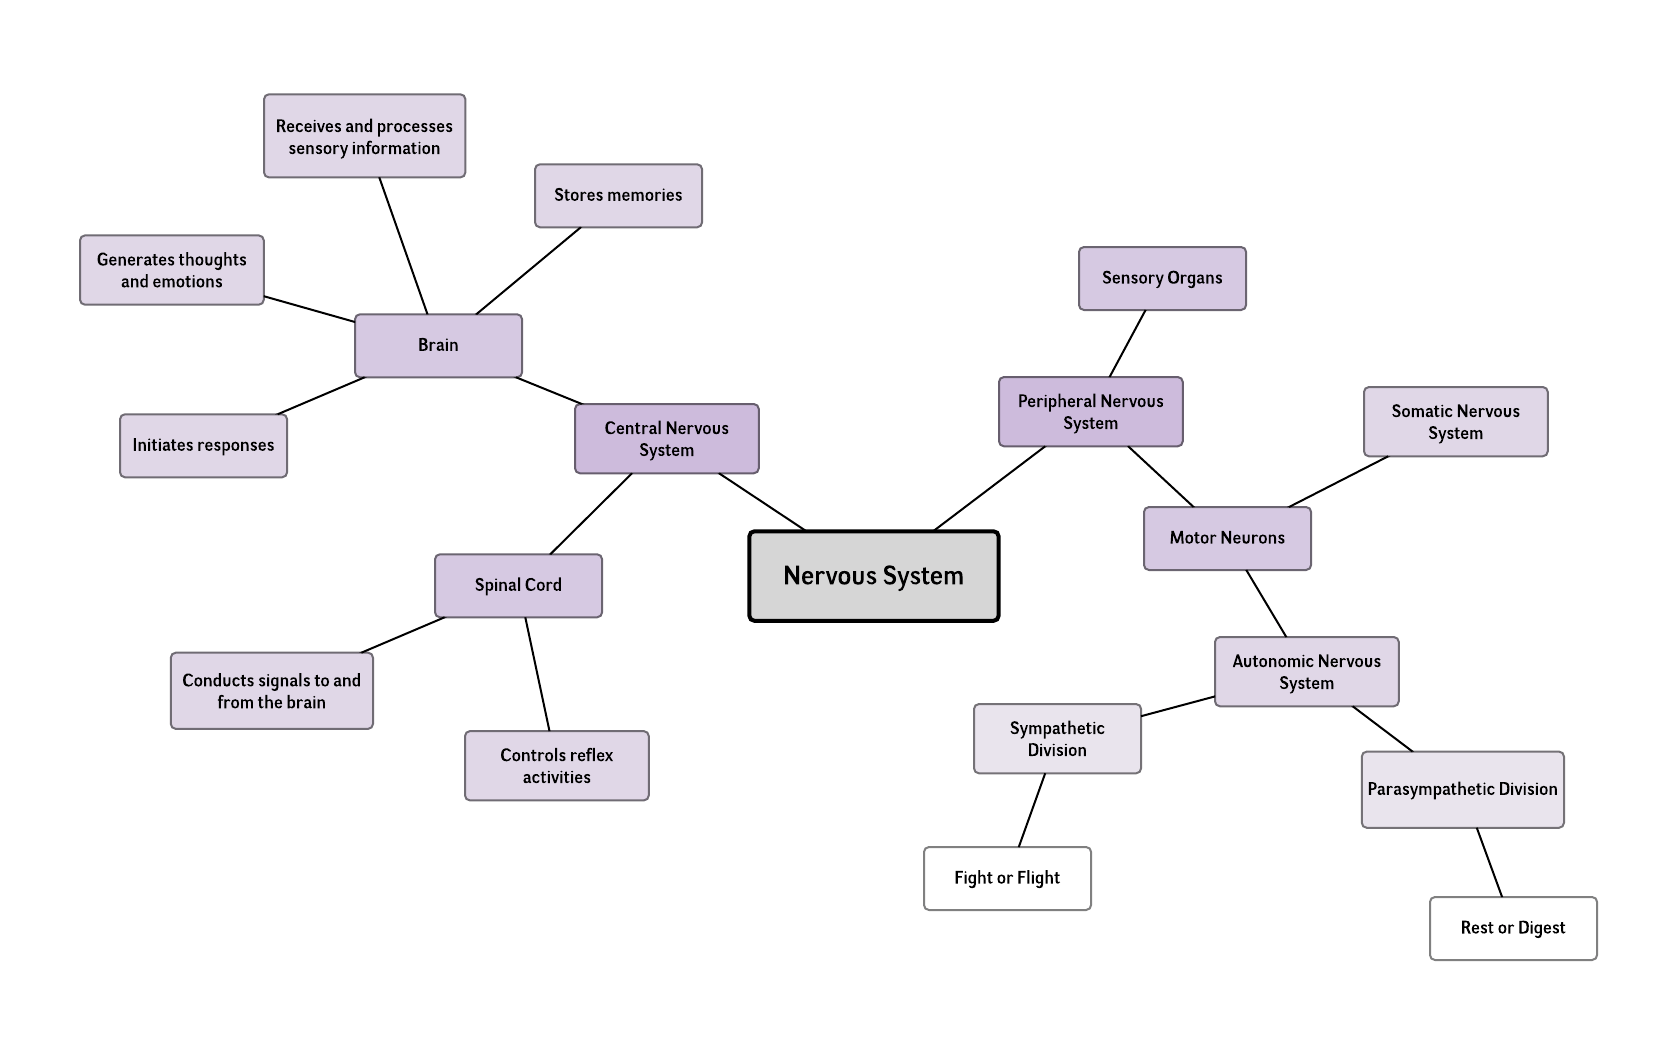 Nervous System Mind Map Template